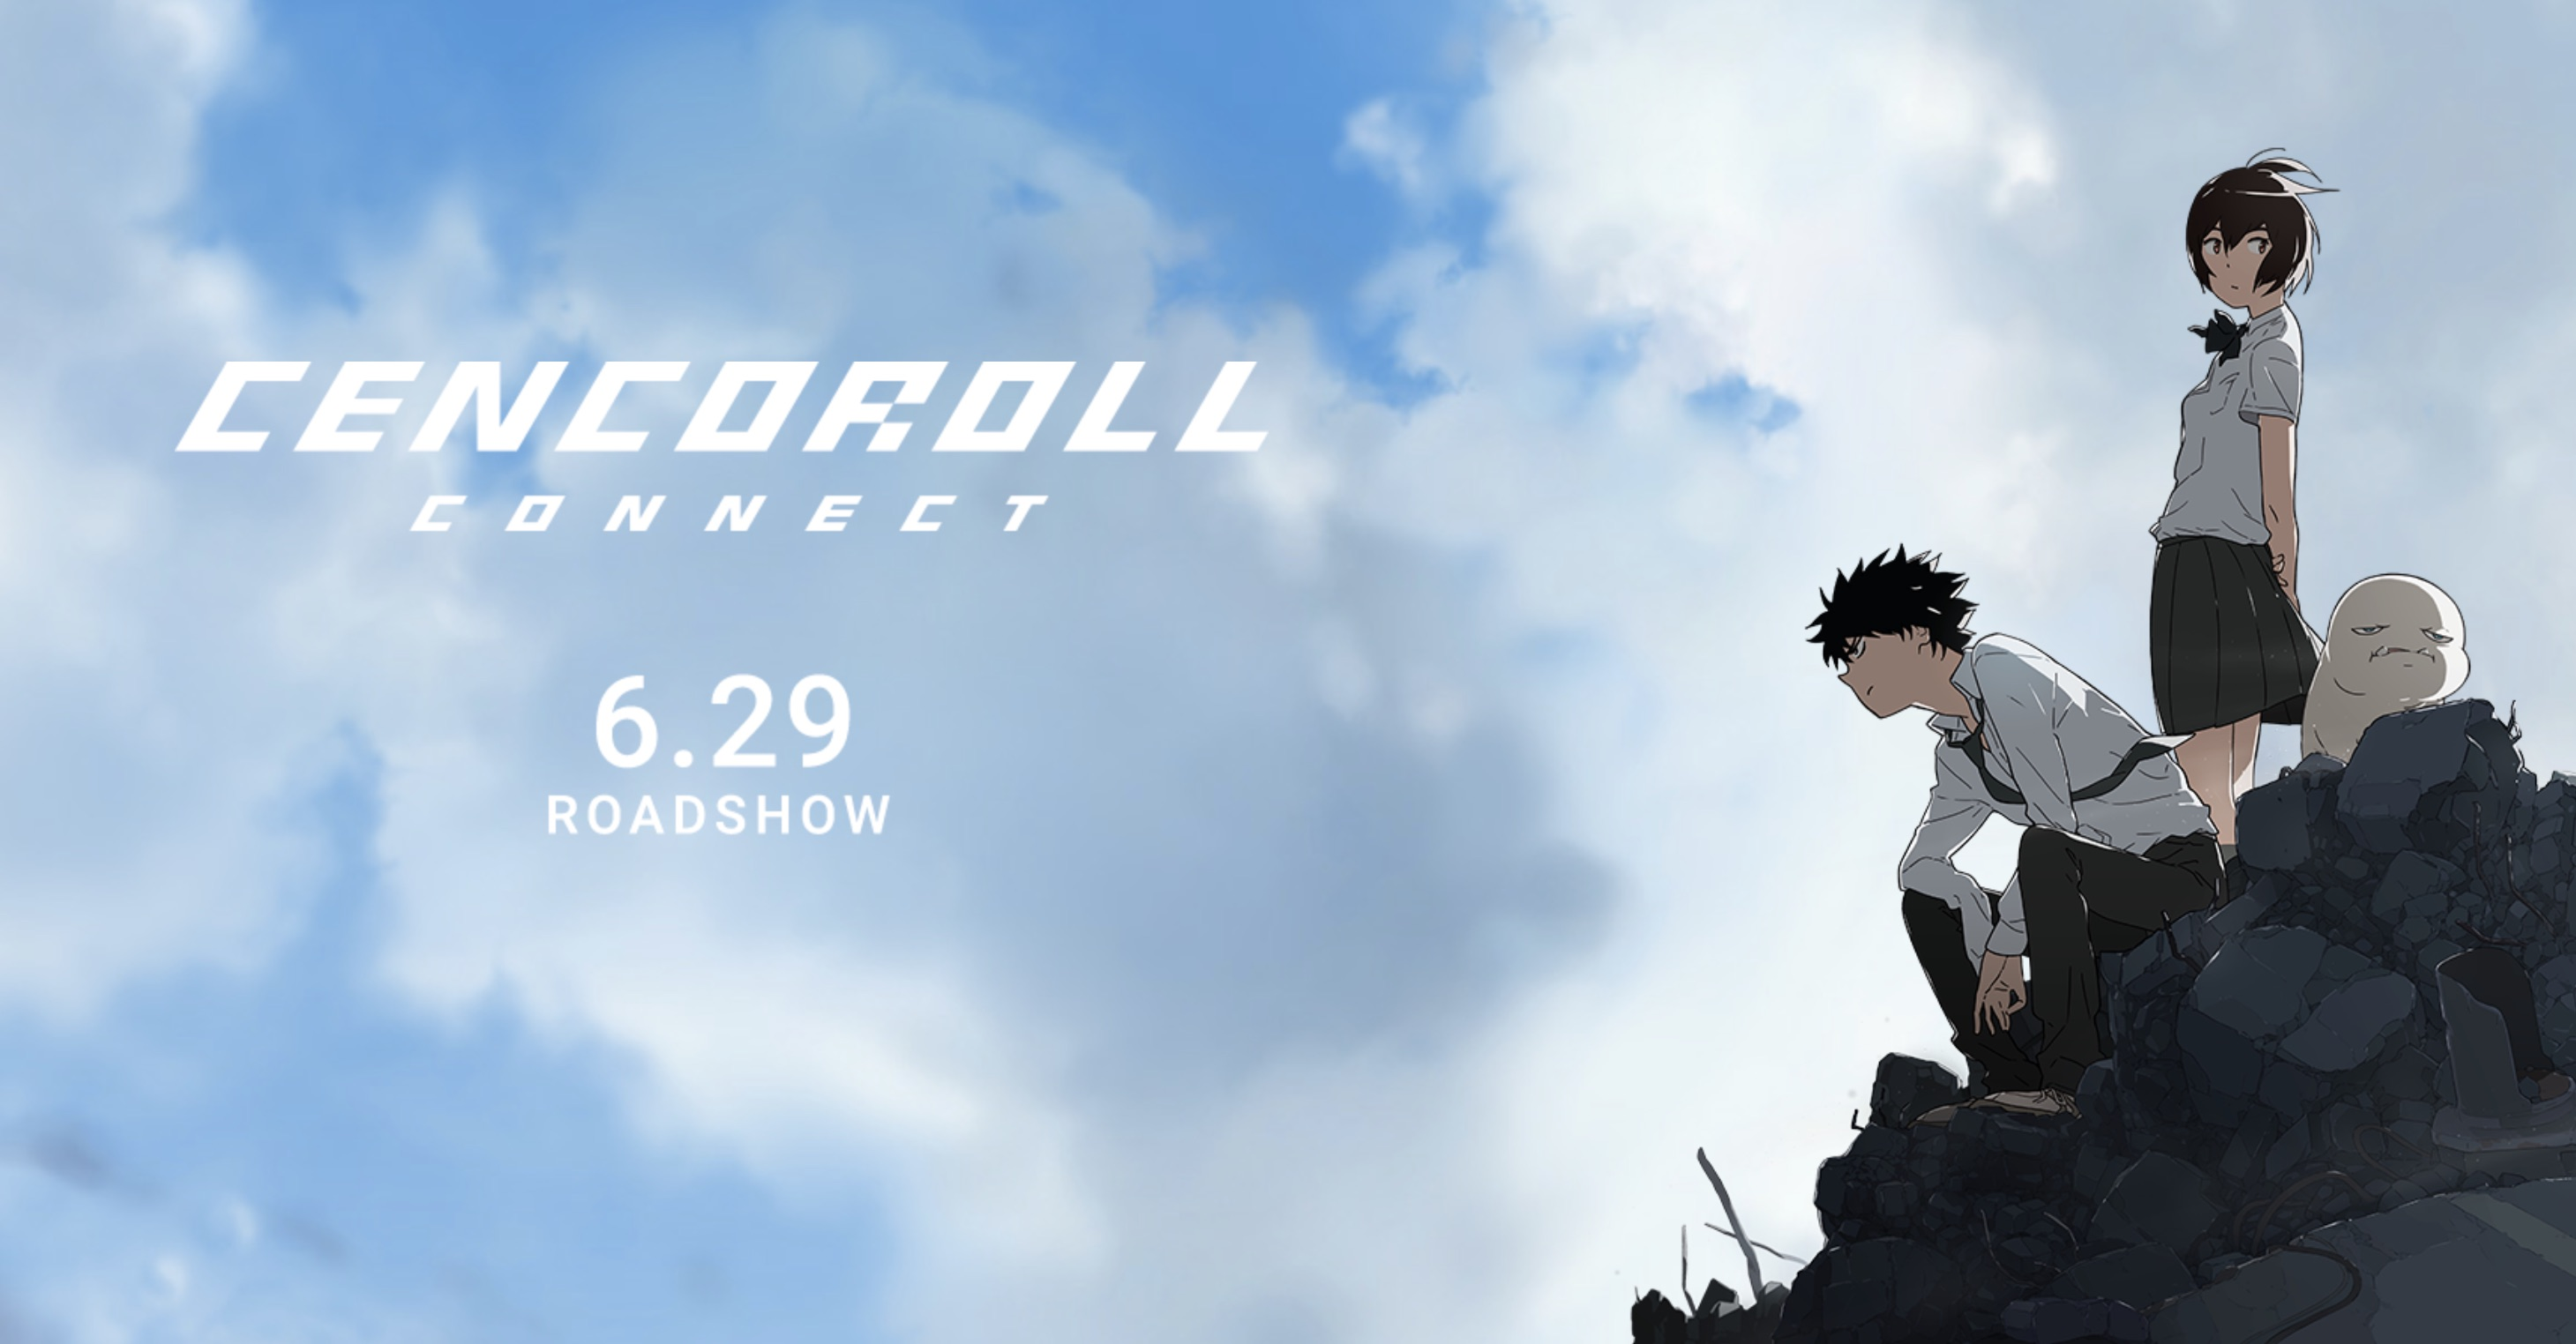 Cencoroll Sequel Rolls into Japanese Theaters This June